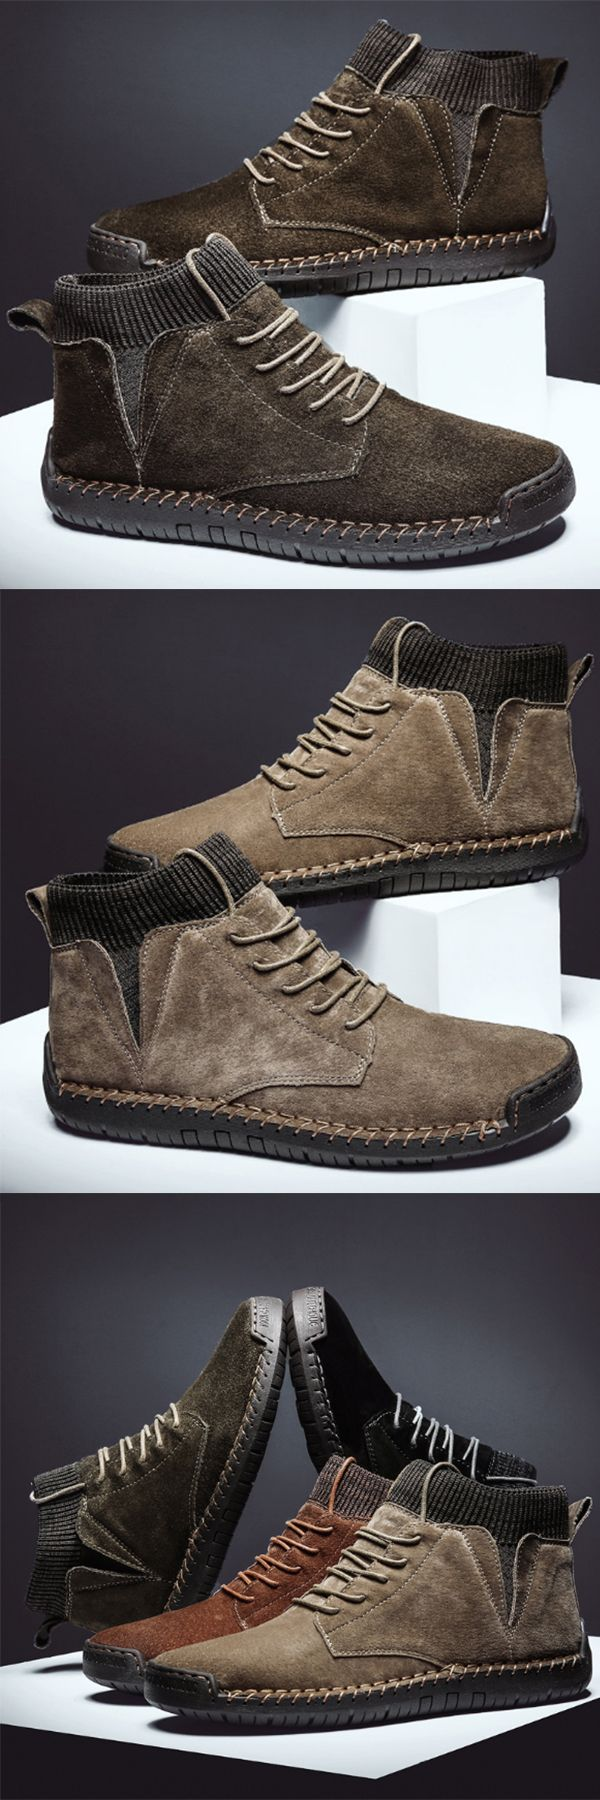 Photo of Men Suede Fabric Splicing Hand Stitching Non Slip Casual Boots#Boots#Casual #Thanksgiving